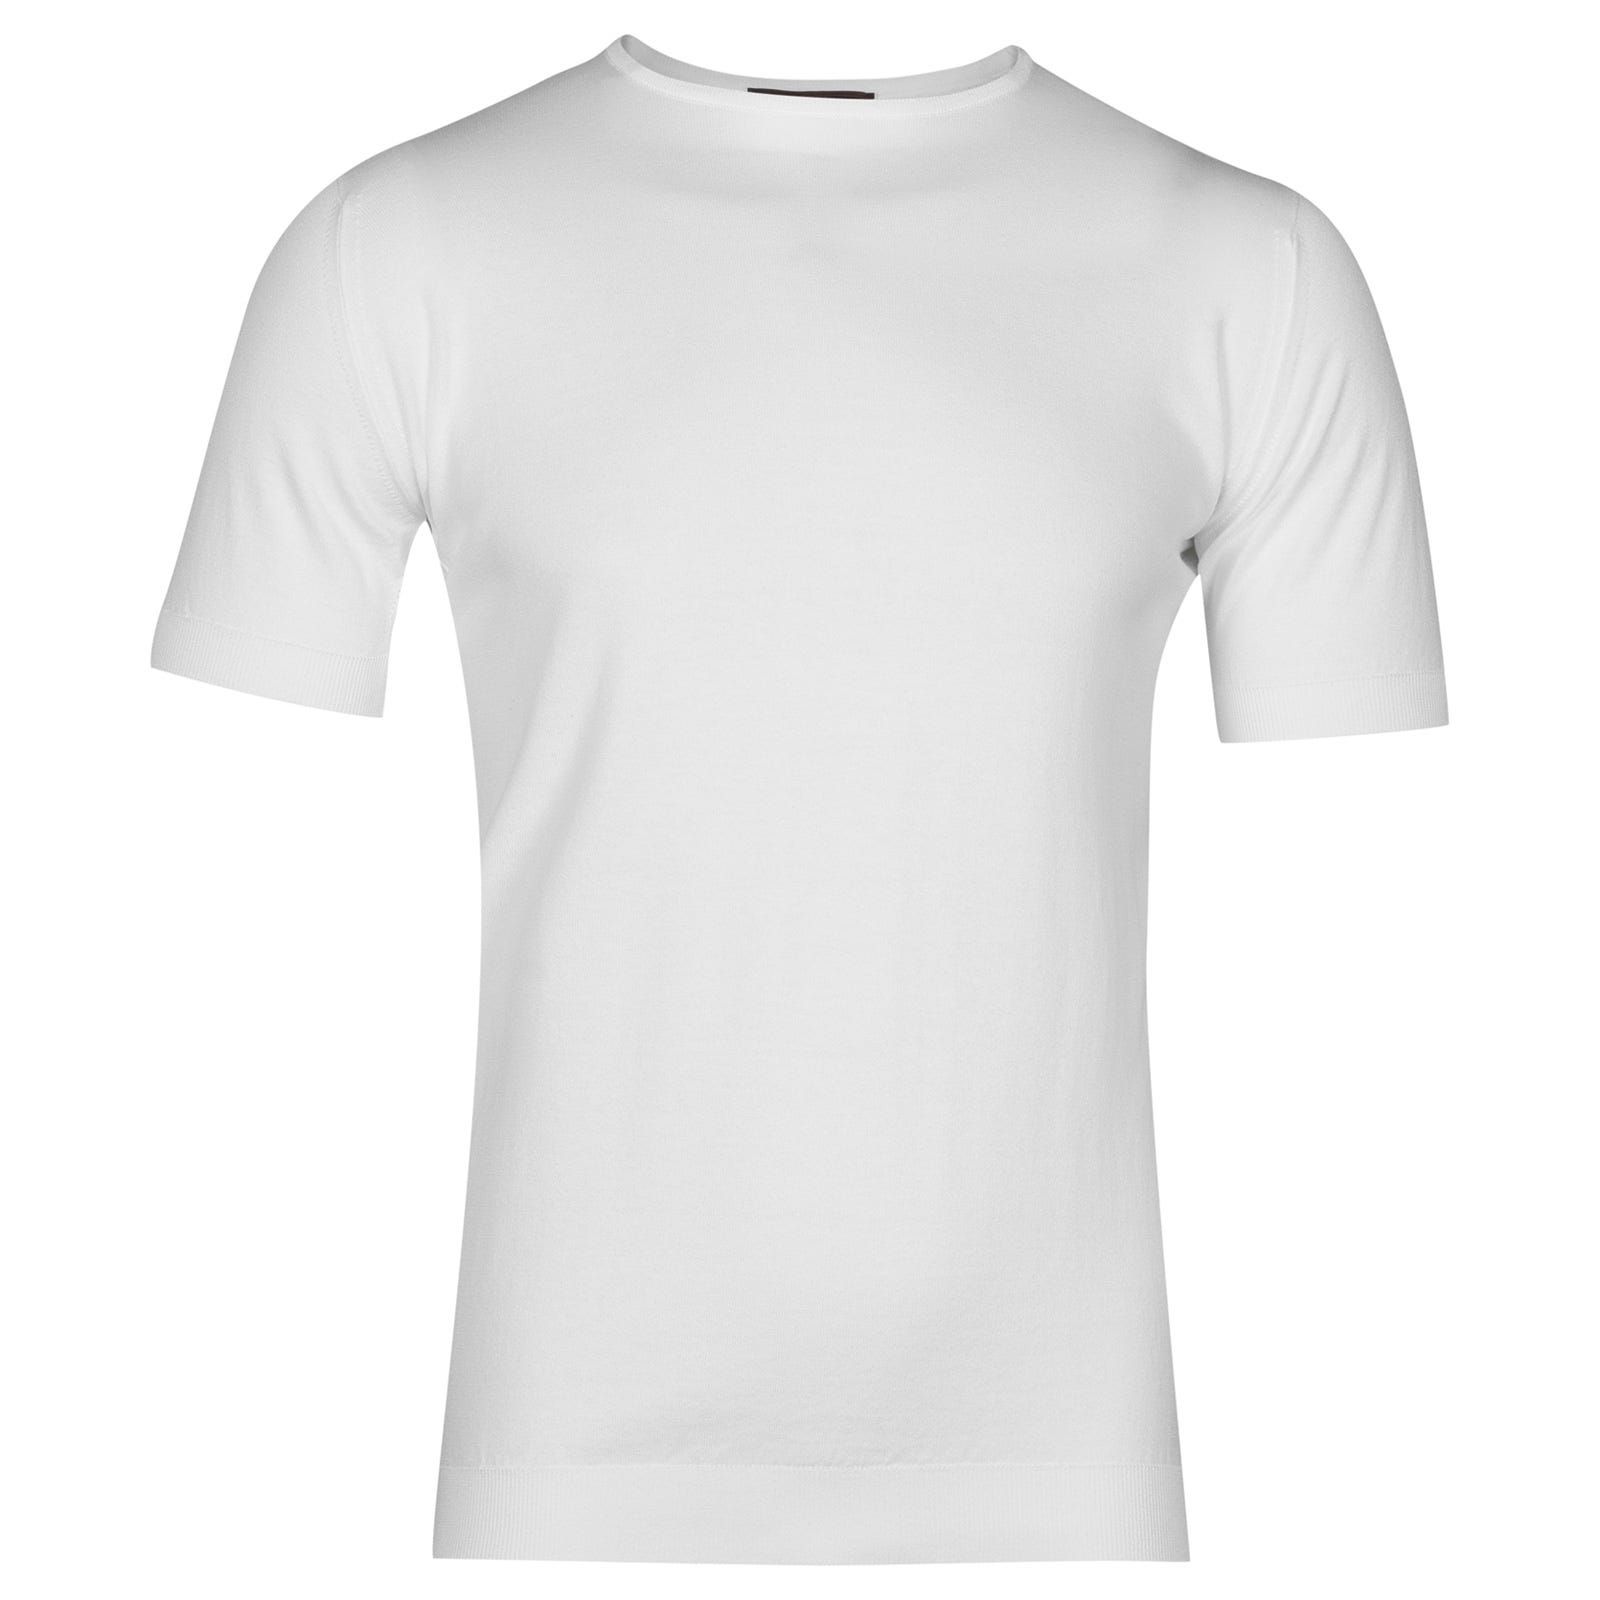 John Smedley belden Sea Island Cotton T-shirt in white-L